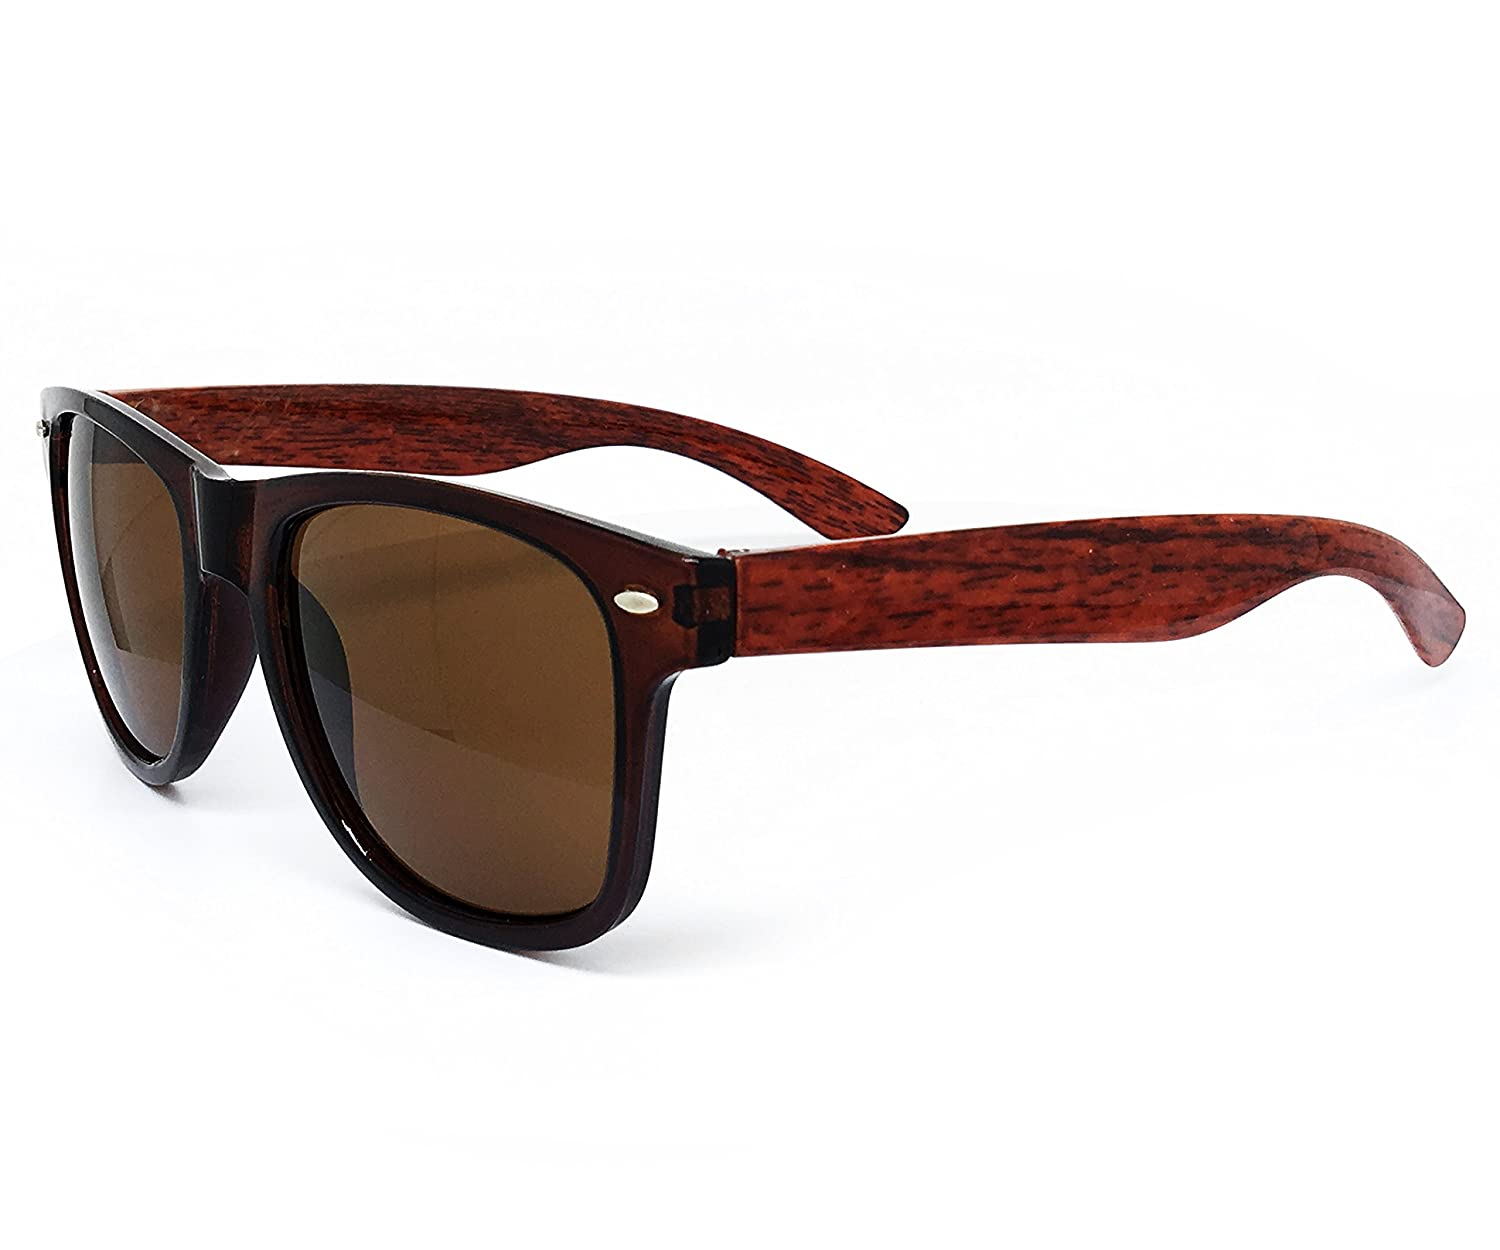 O2 Eyewear CH52 Faux Wood Reflective polished Horn Rimmed Womens Mens Funky Sunglasses